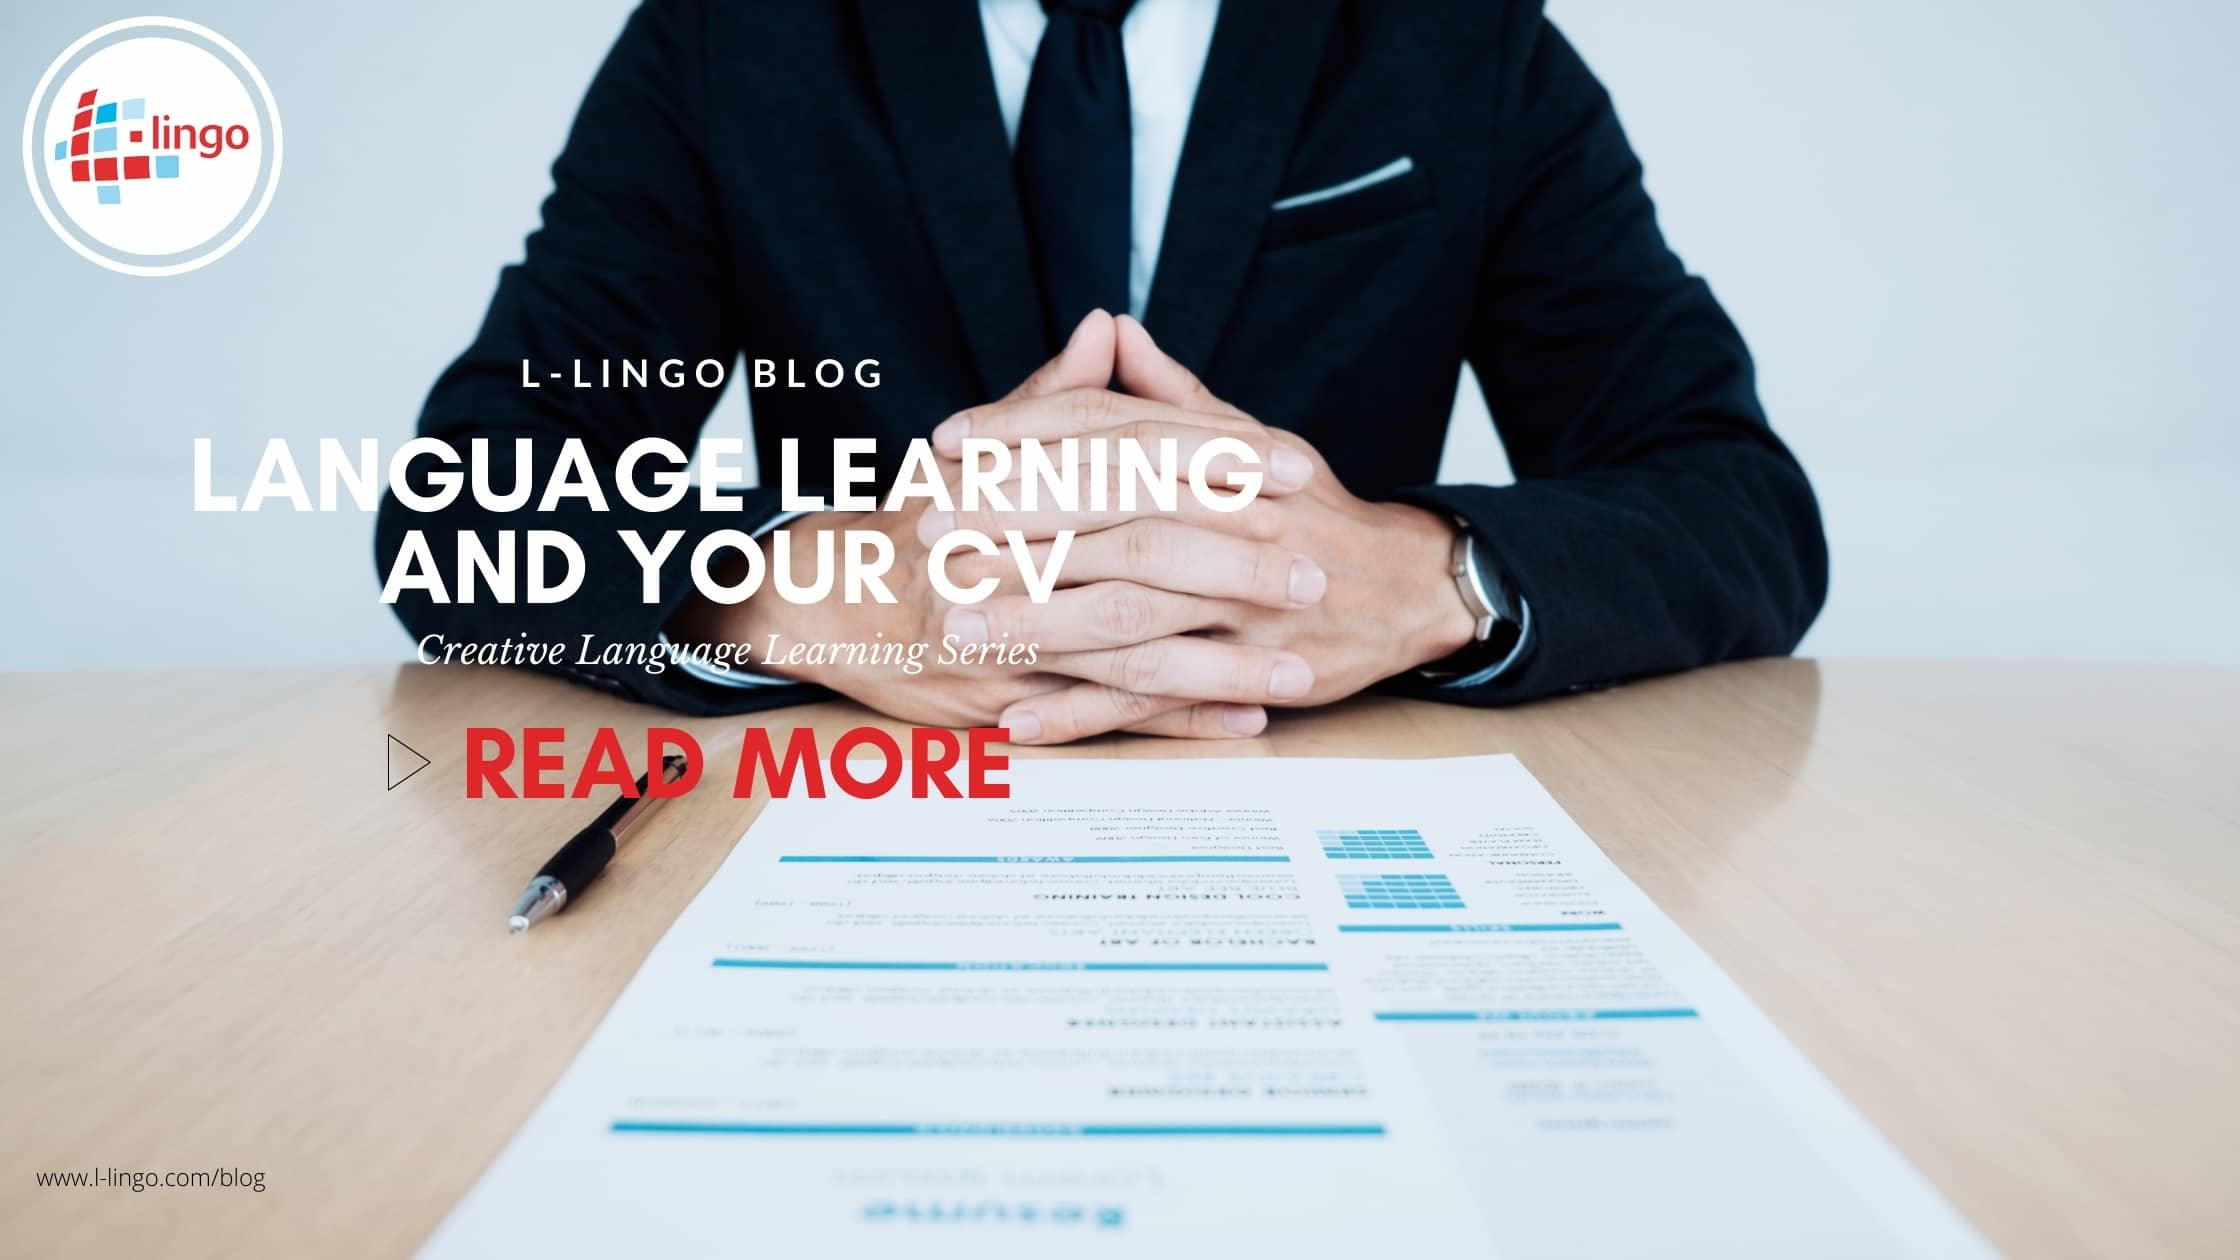 language learning and cv l-lingo